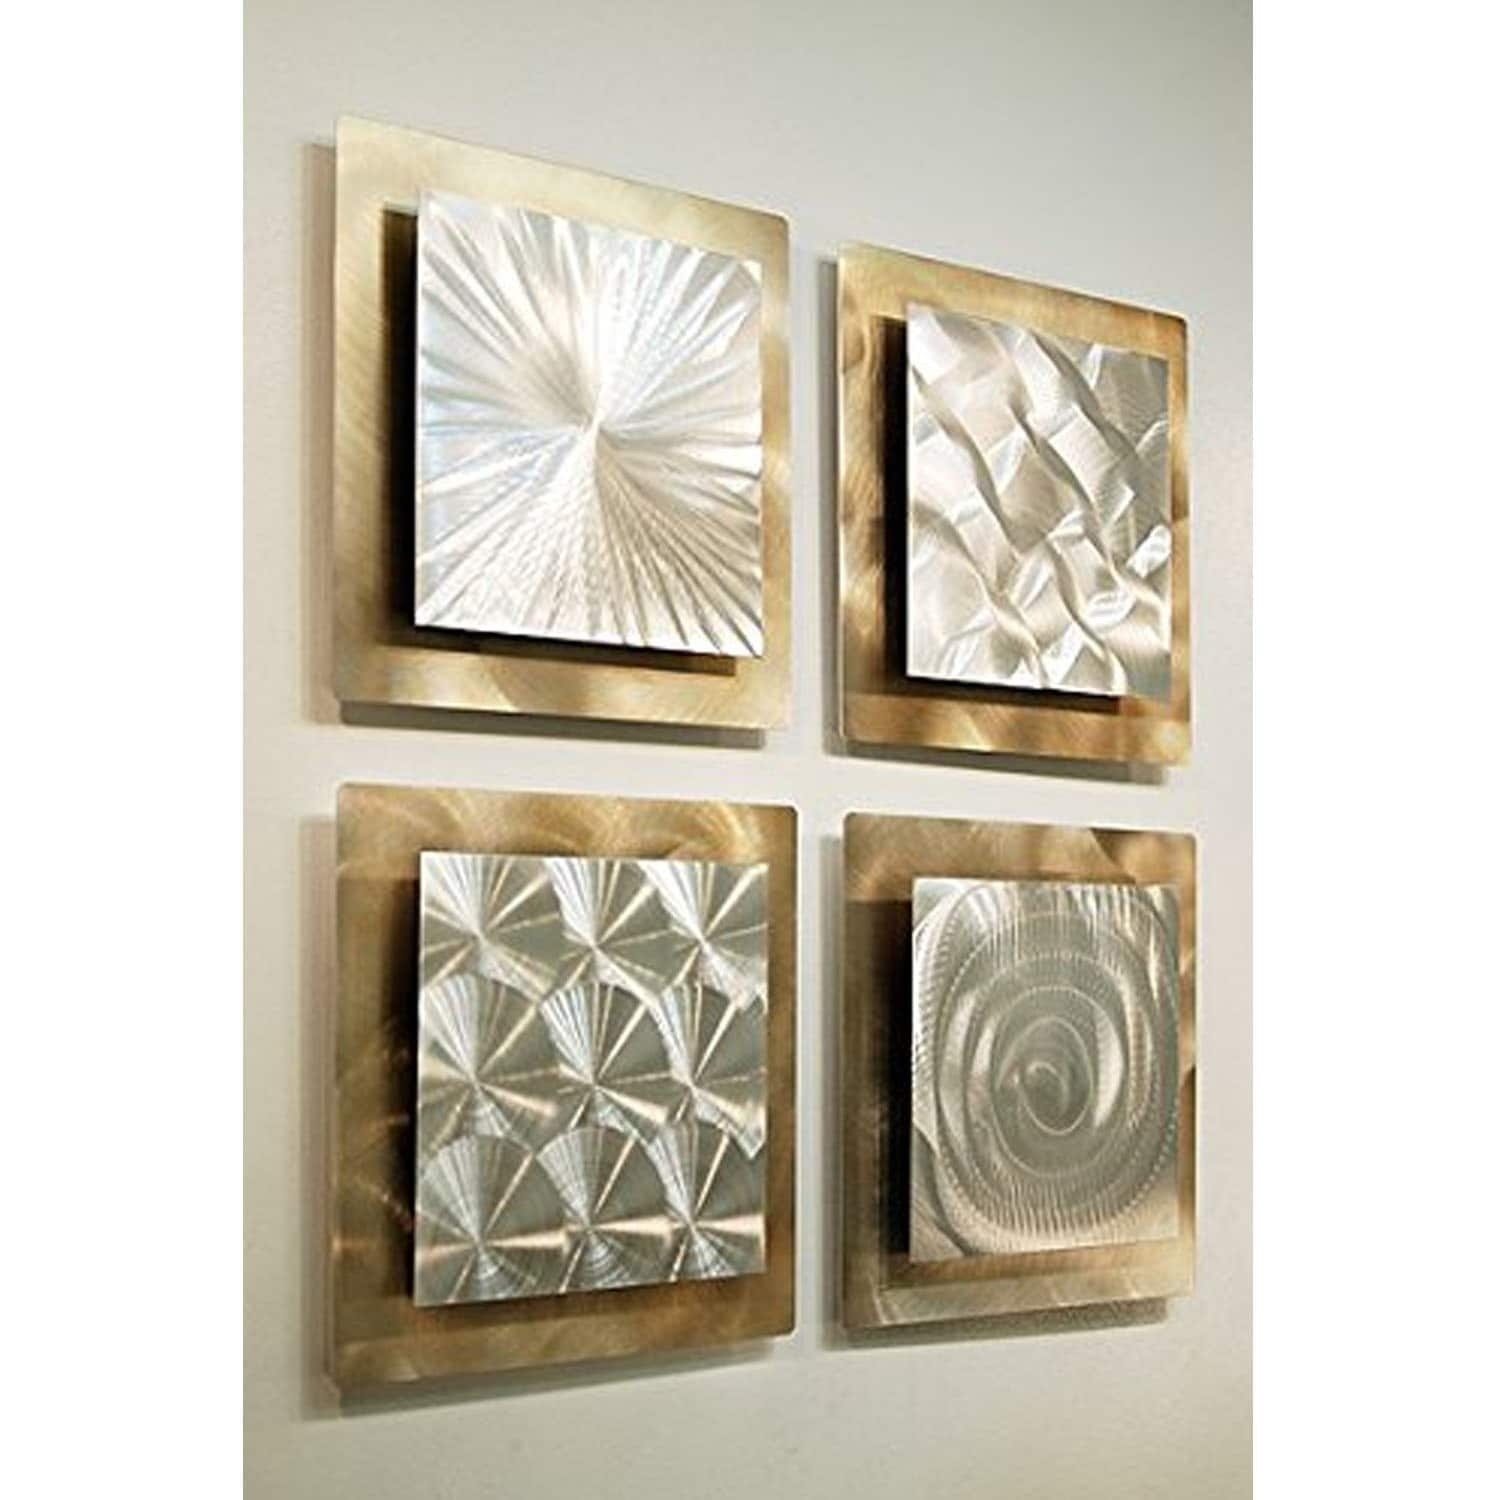 Statements2000 Set Of 4 Gold / Silver Metal Wall Art Accentjon Throughout 2018 Rectangular Wall Accents (View 12 of 15)